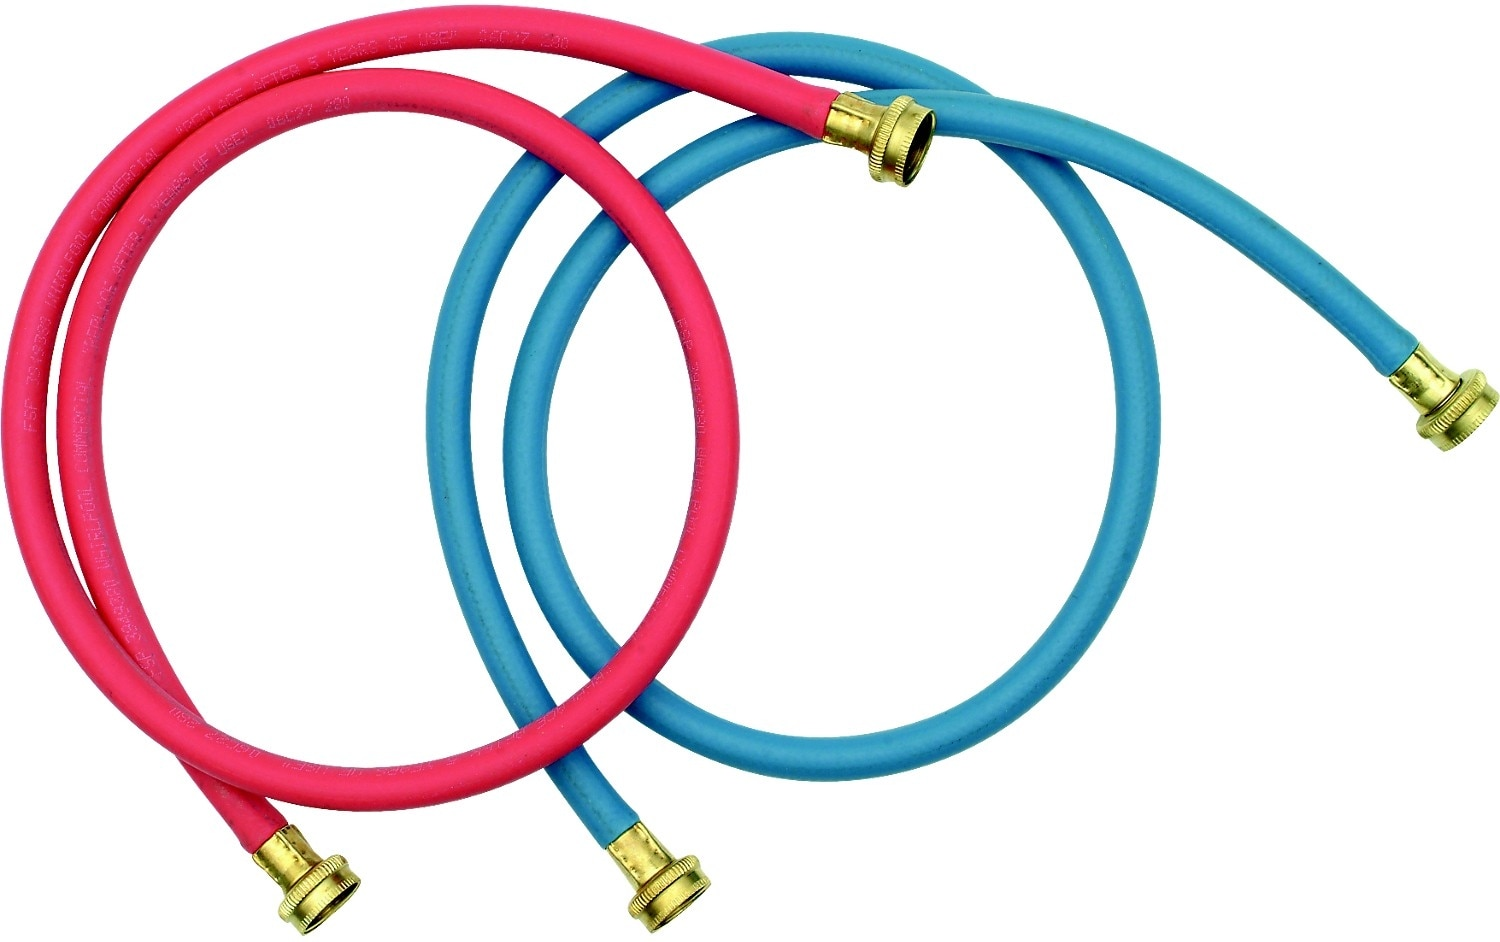 Washers and Dryers - 5' Commercial Grade Washer Hoses - 2 Pack